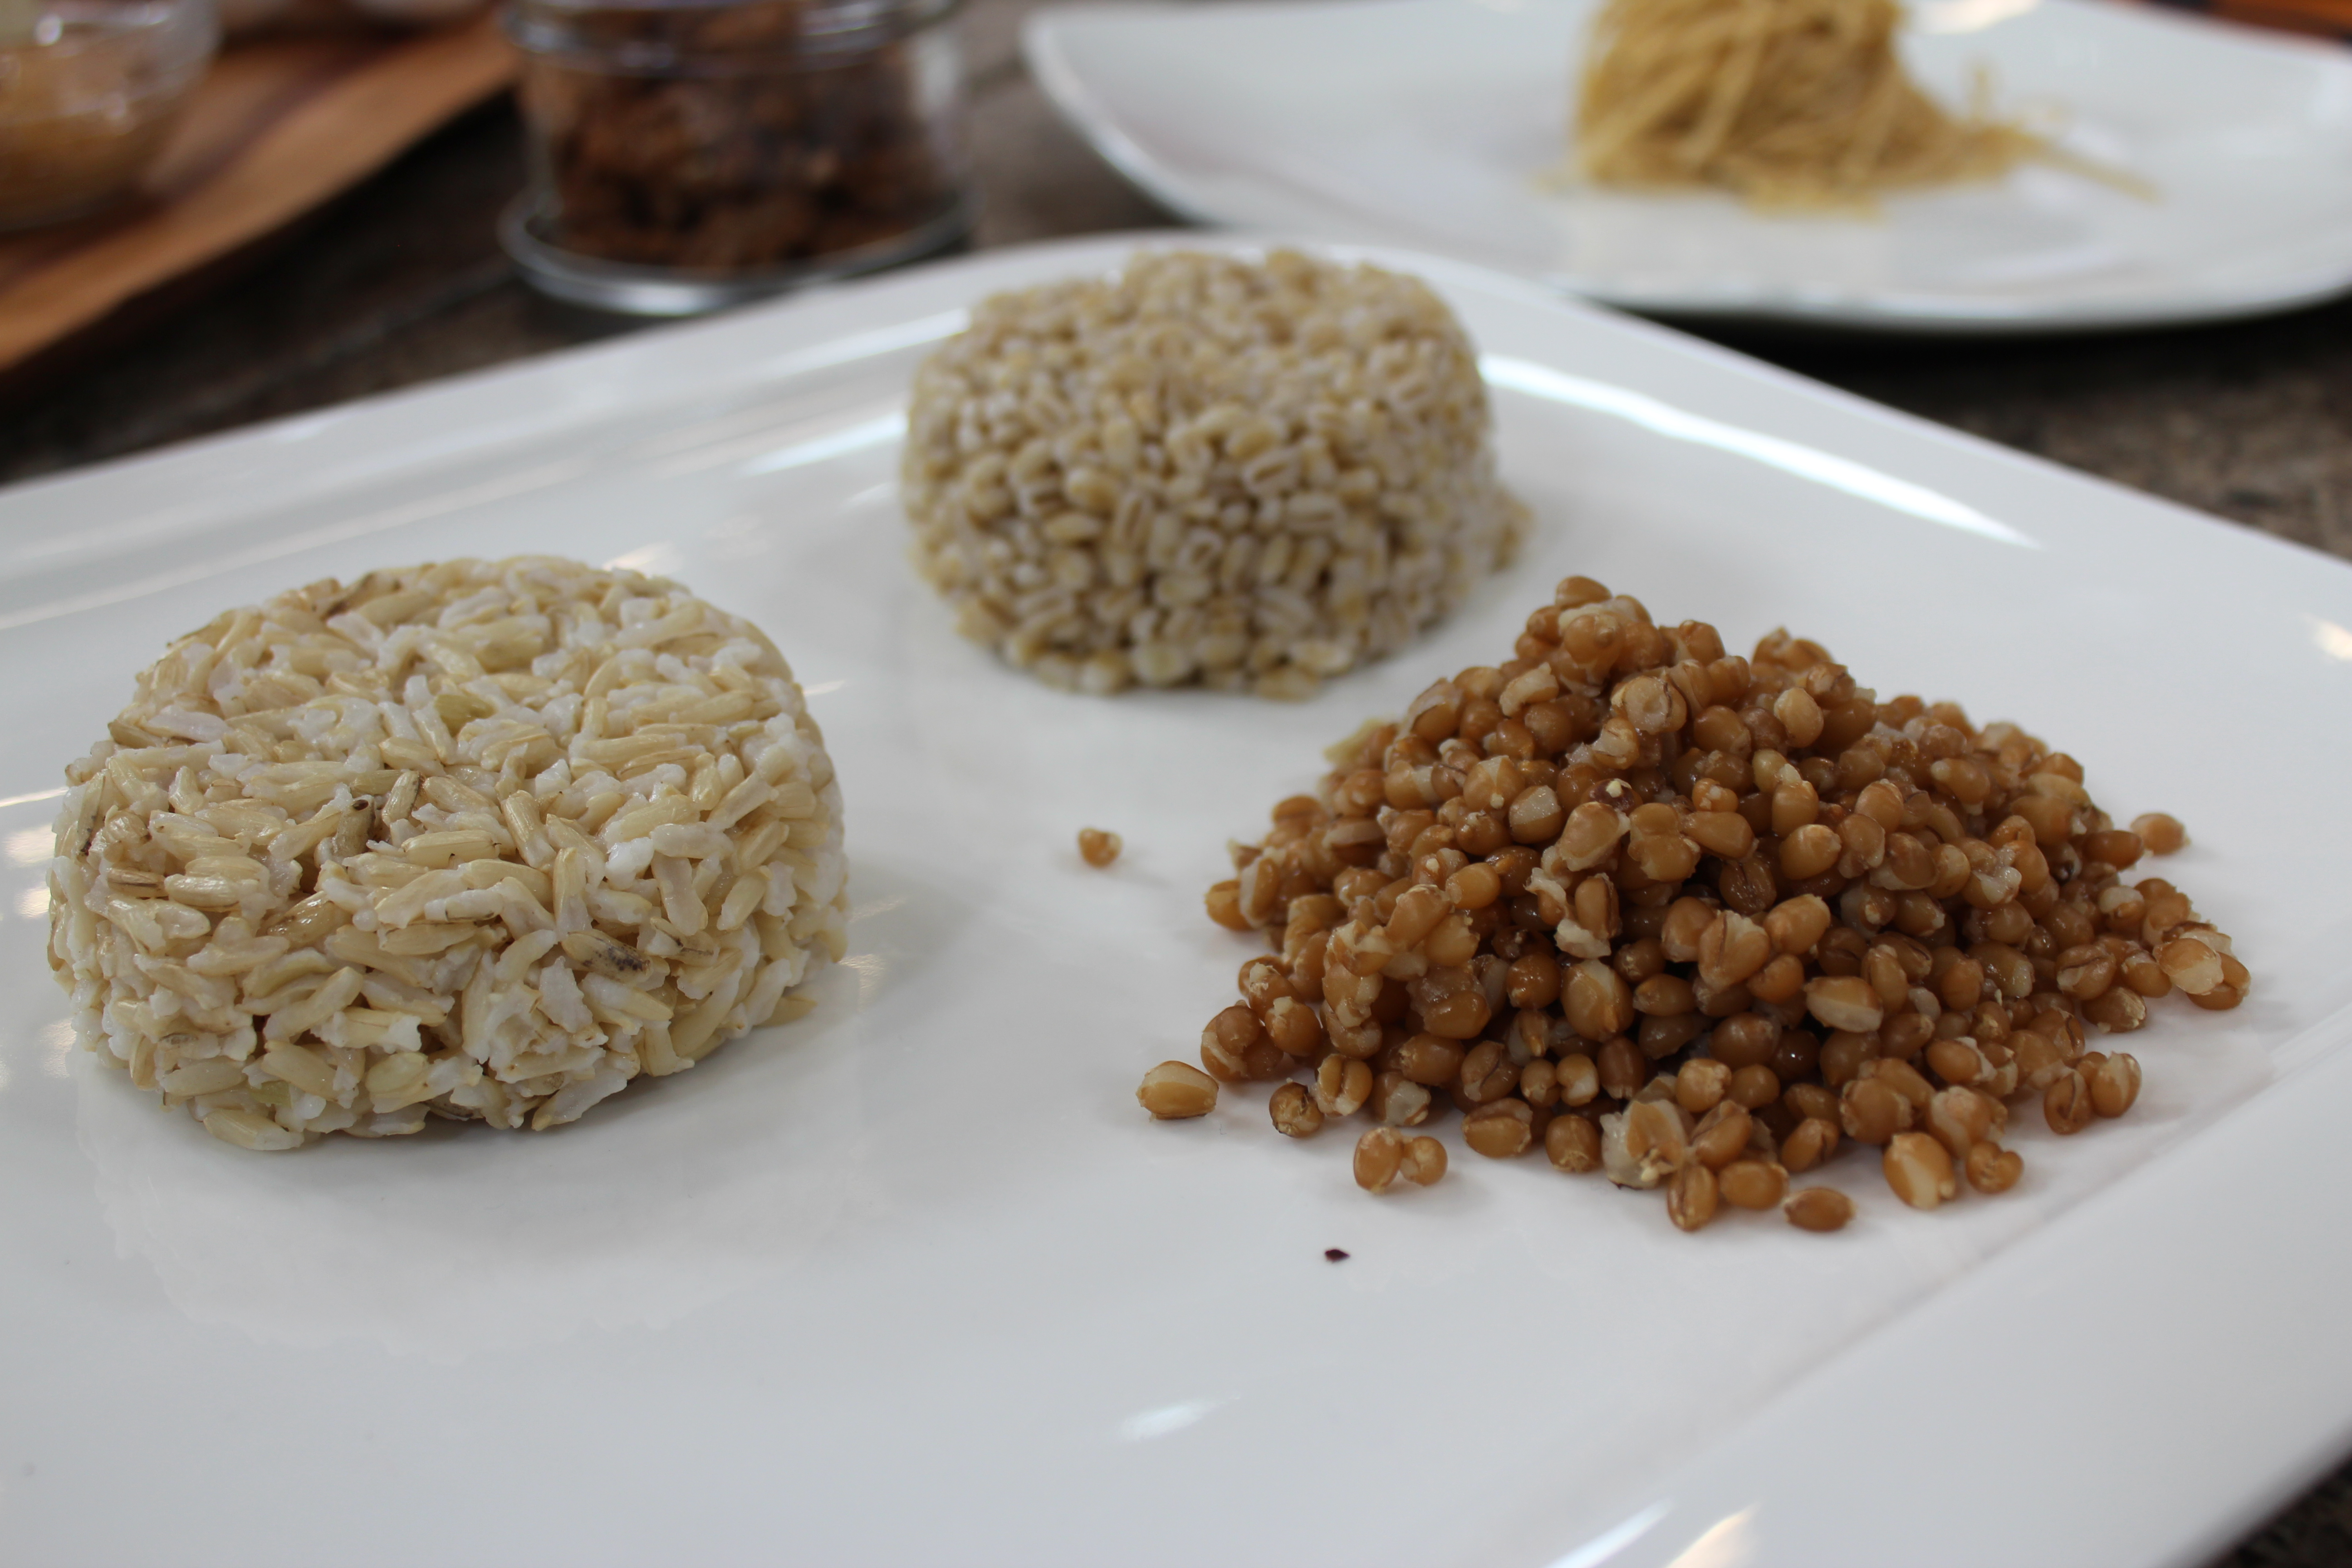 2 Cup (125 Ml) Of Cooked Whole Grains Use A Measuring